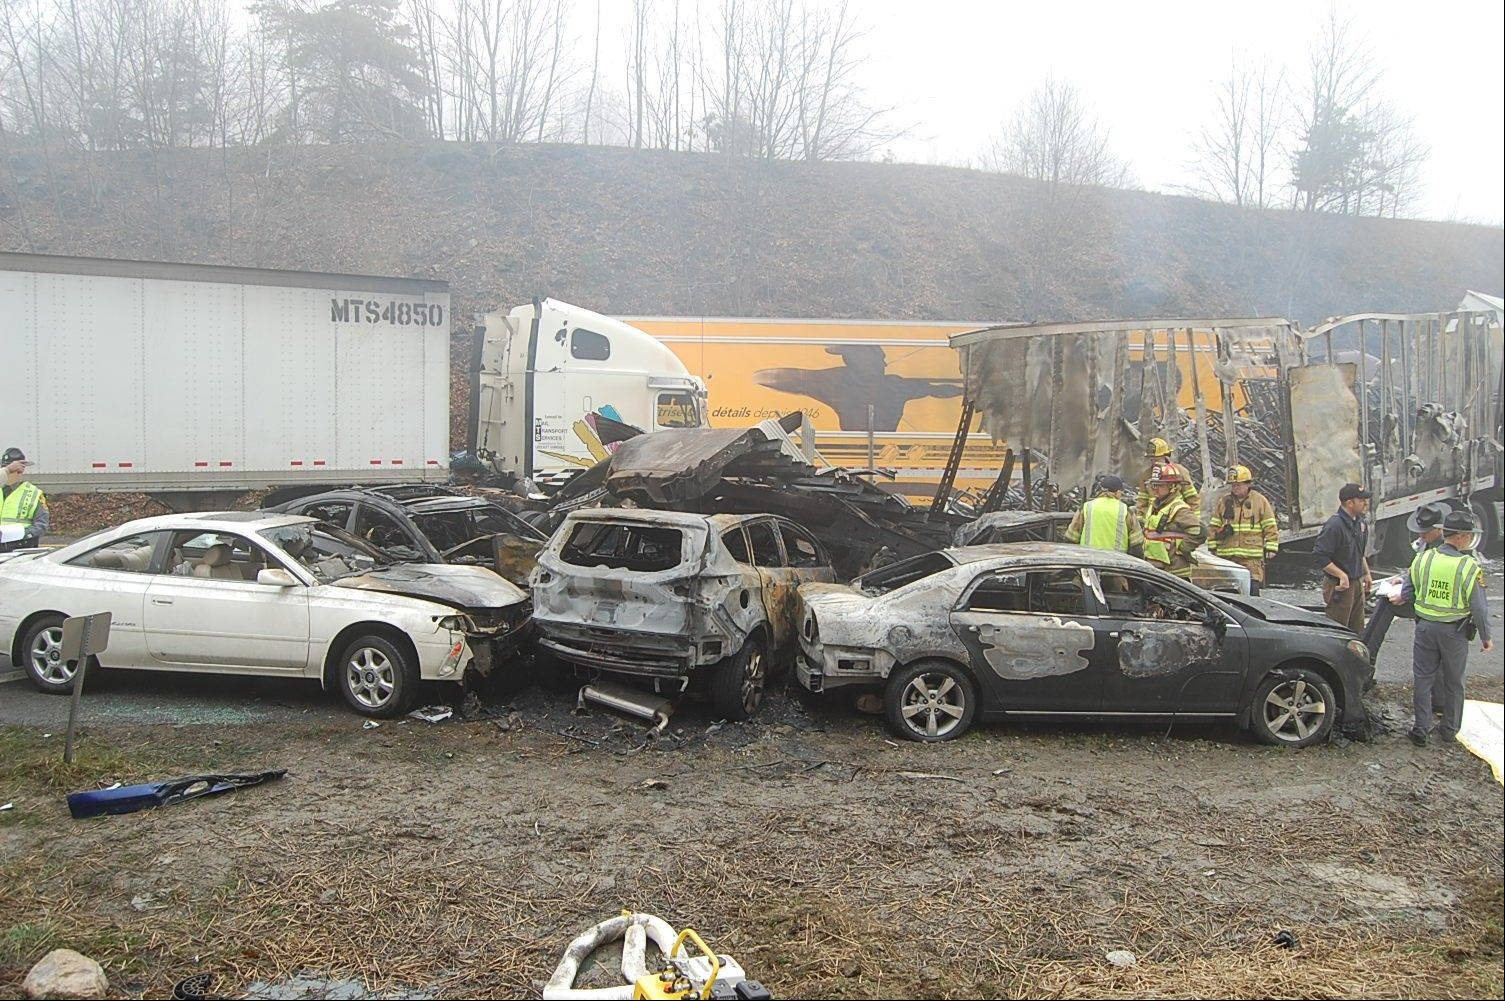 Virginia State Police say three people have been killed and more than 20 are injured and traffic was backed up about 8 miles following a 95-vehicle pileup on Interstate 77 near the Virginia-North Carolina border in Galax, Va., on Sunday.